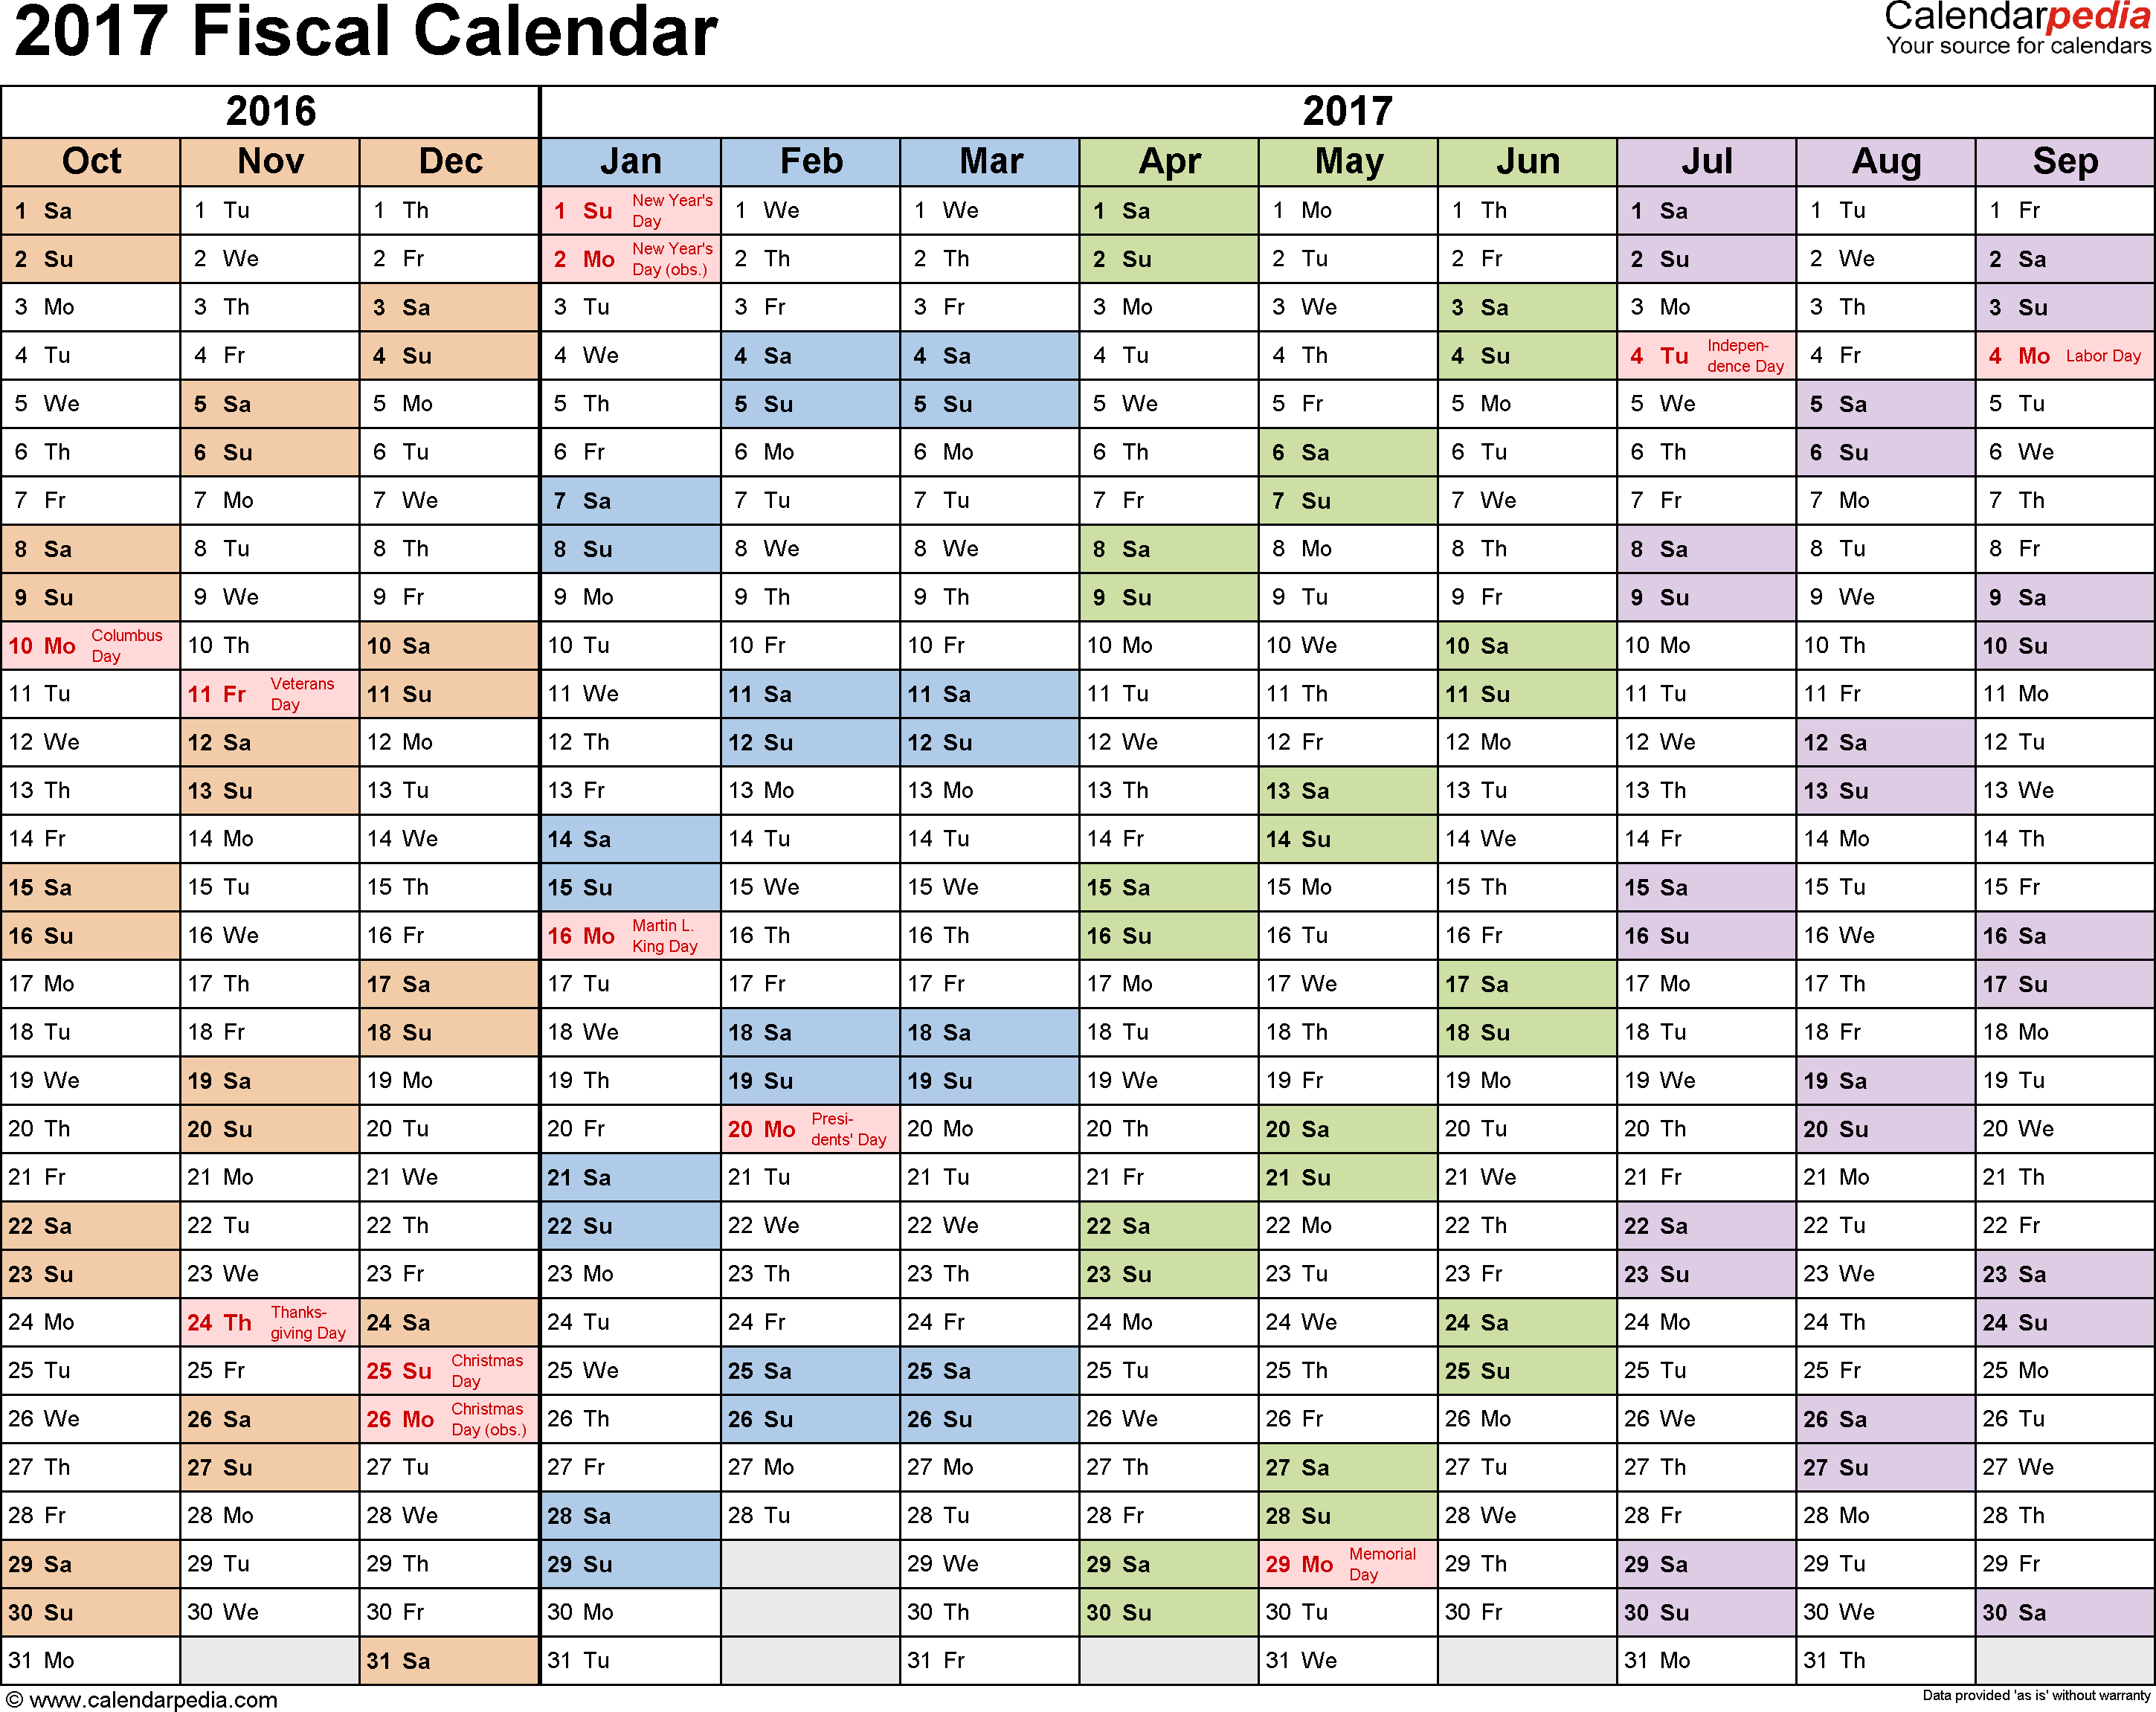 Template 1: Fiscal year calendar 2017 for PDF, landscape orientation, months horizontally, 1 page